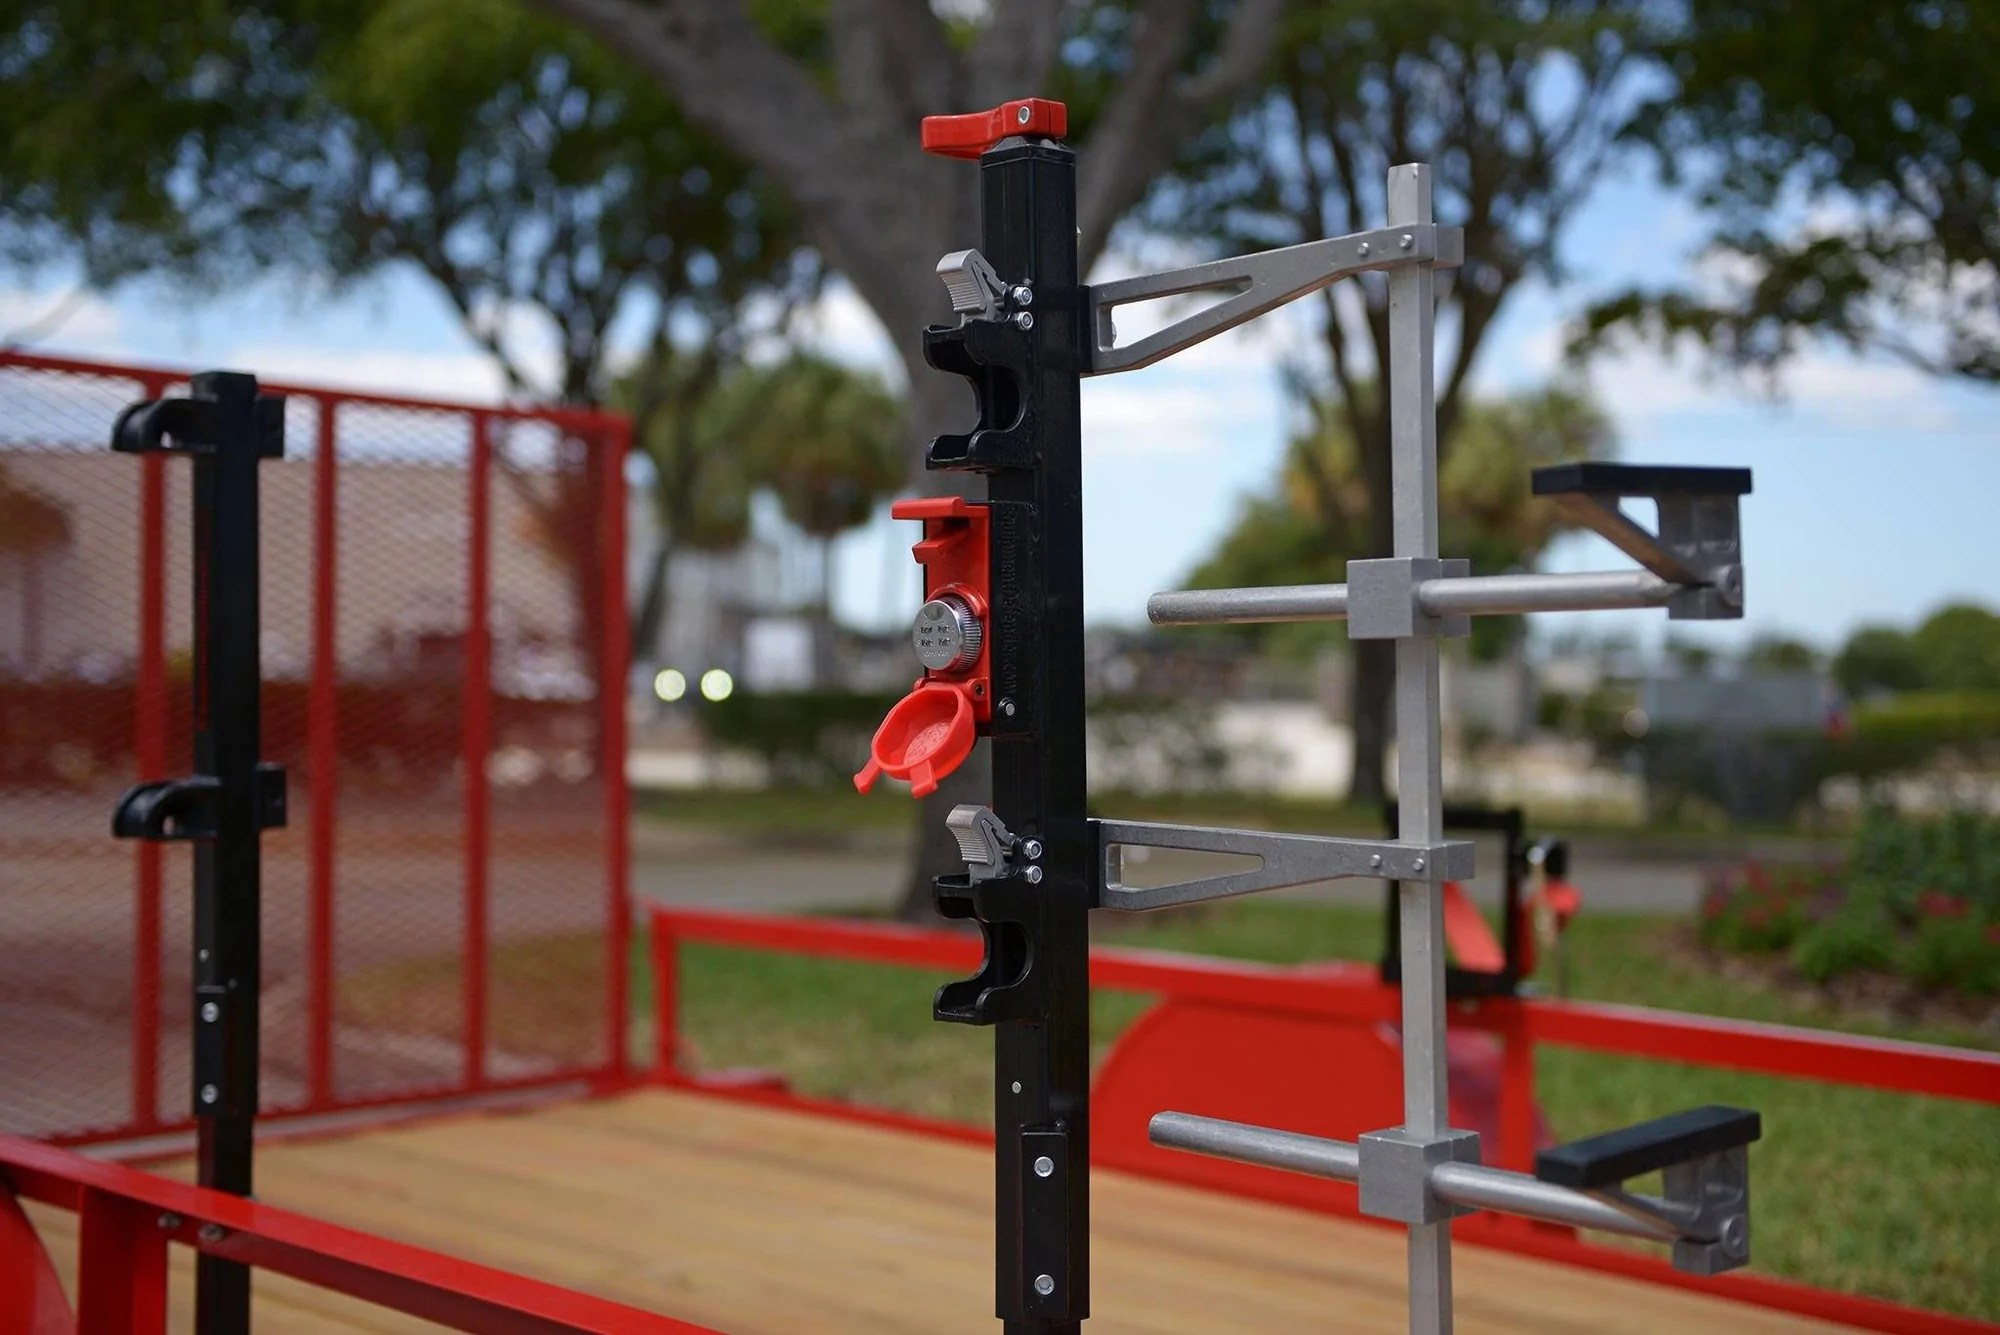 Itll hold two trimmers or weed whackers with the option to secure them with a padlock. Trimmer Racks Weedeater Racks Lockable Trimmer Racks For Trailers Equipment Defender